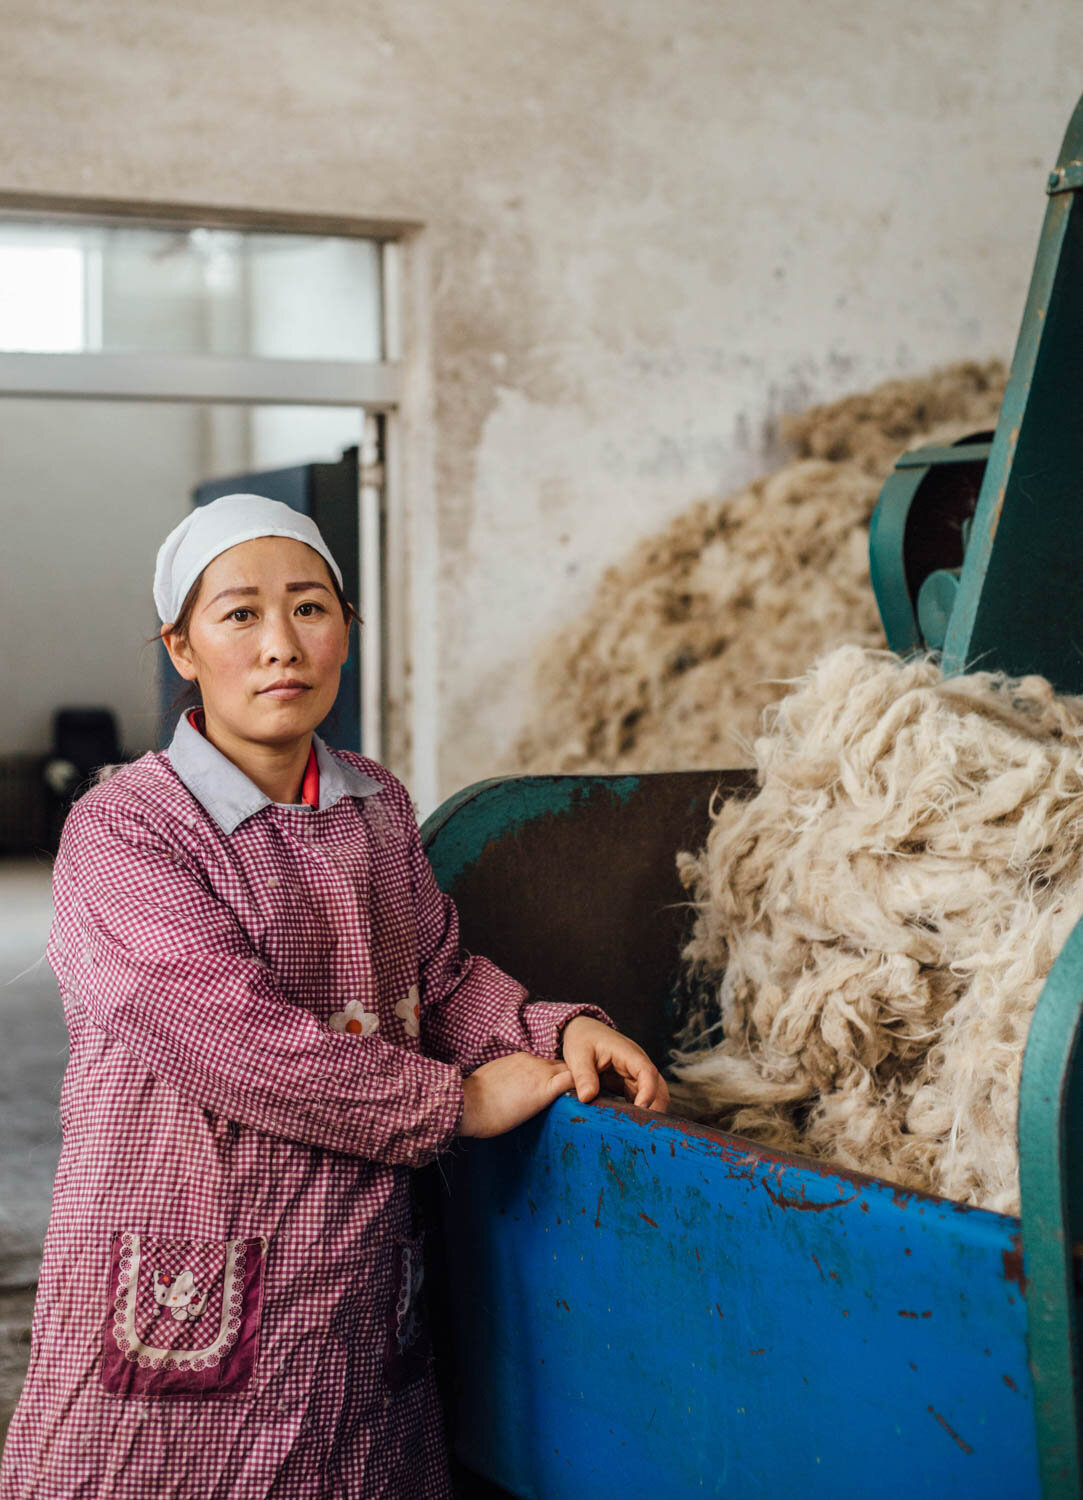 The journey of cashmere, Mongolia 2019